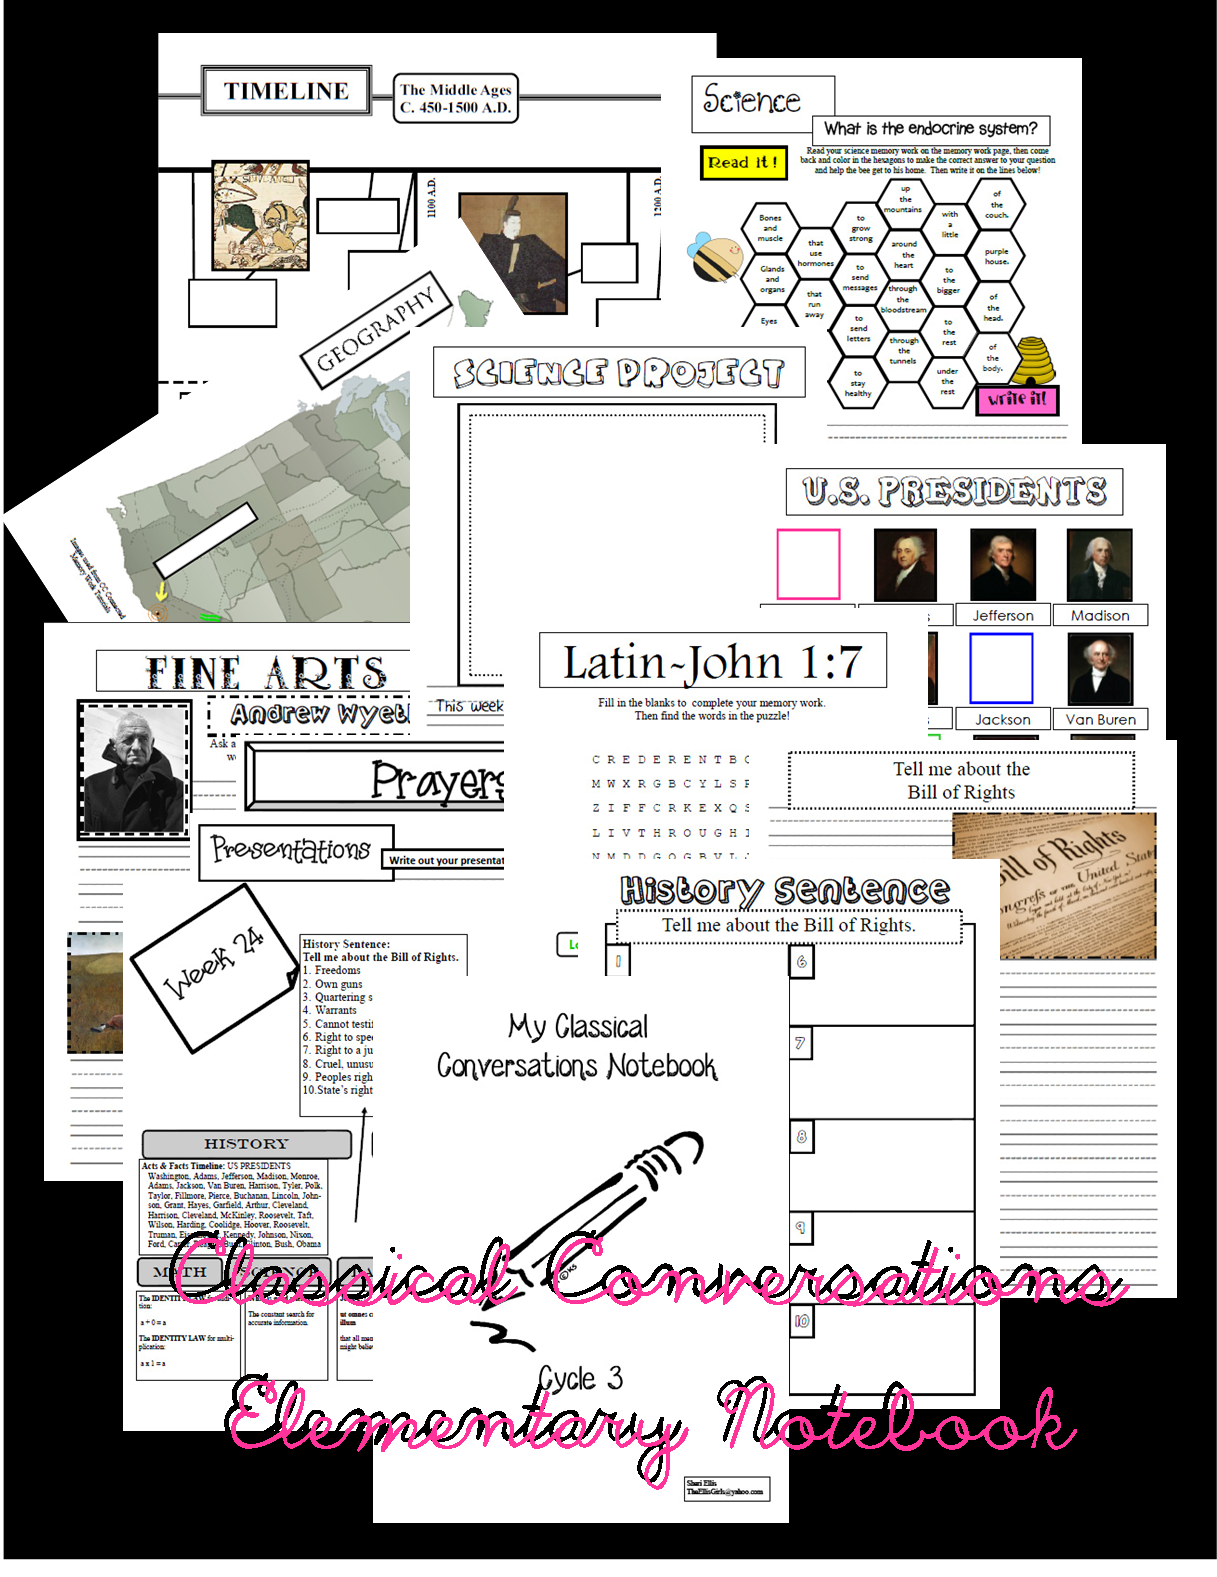 Classical Conversations Notebooking Pages